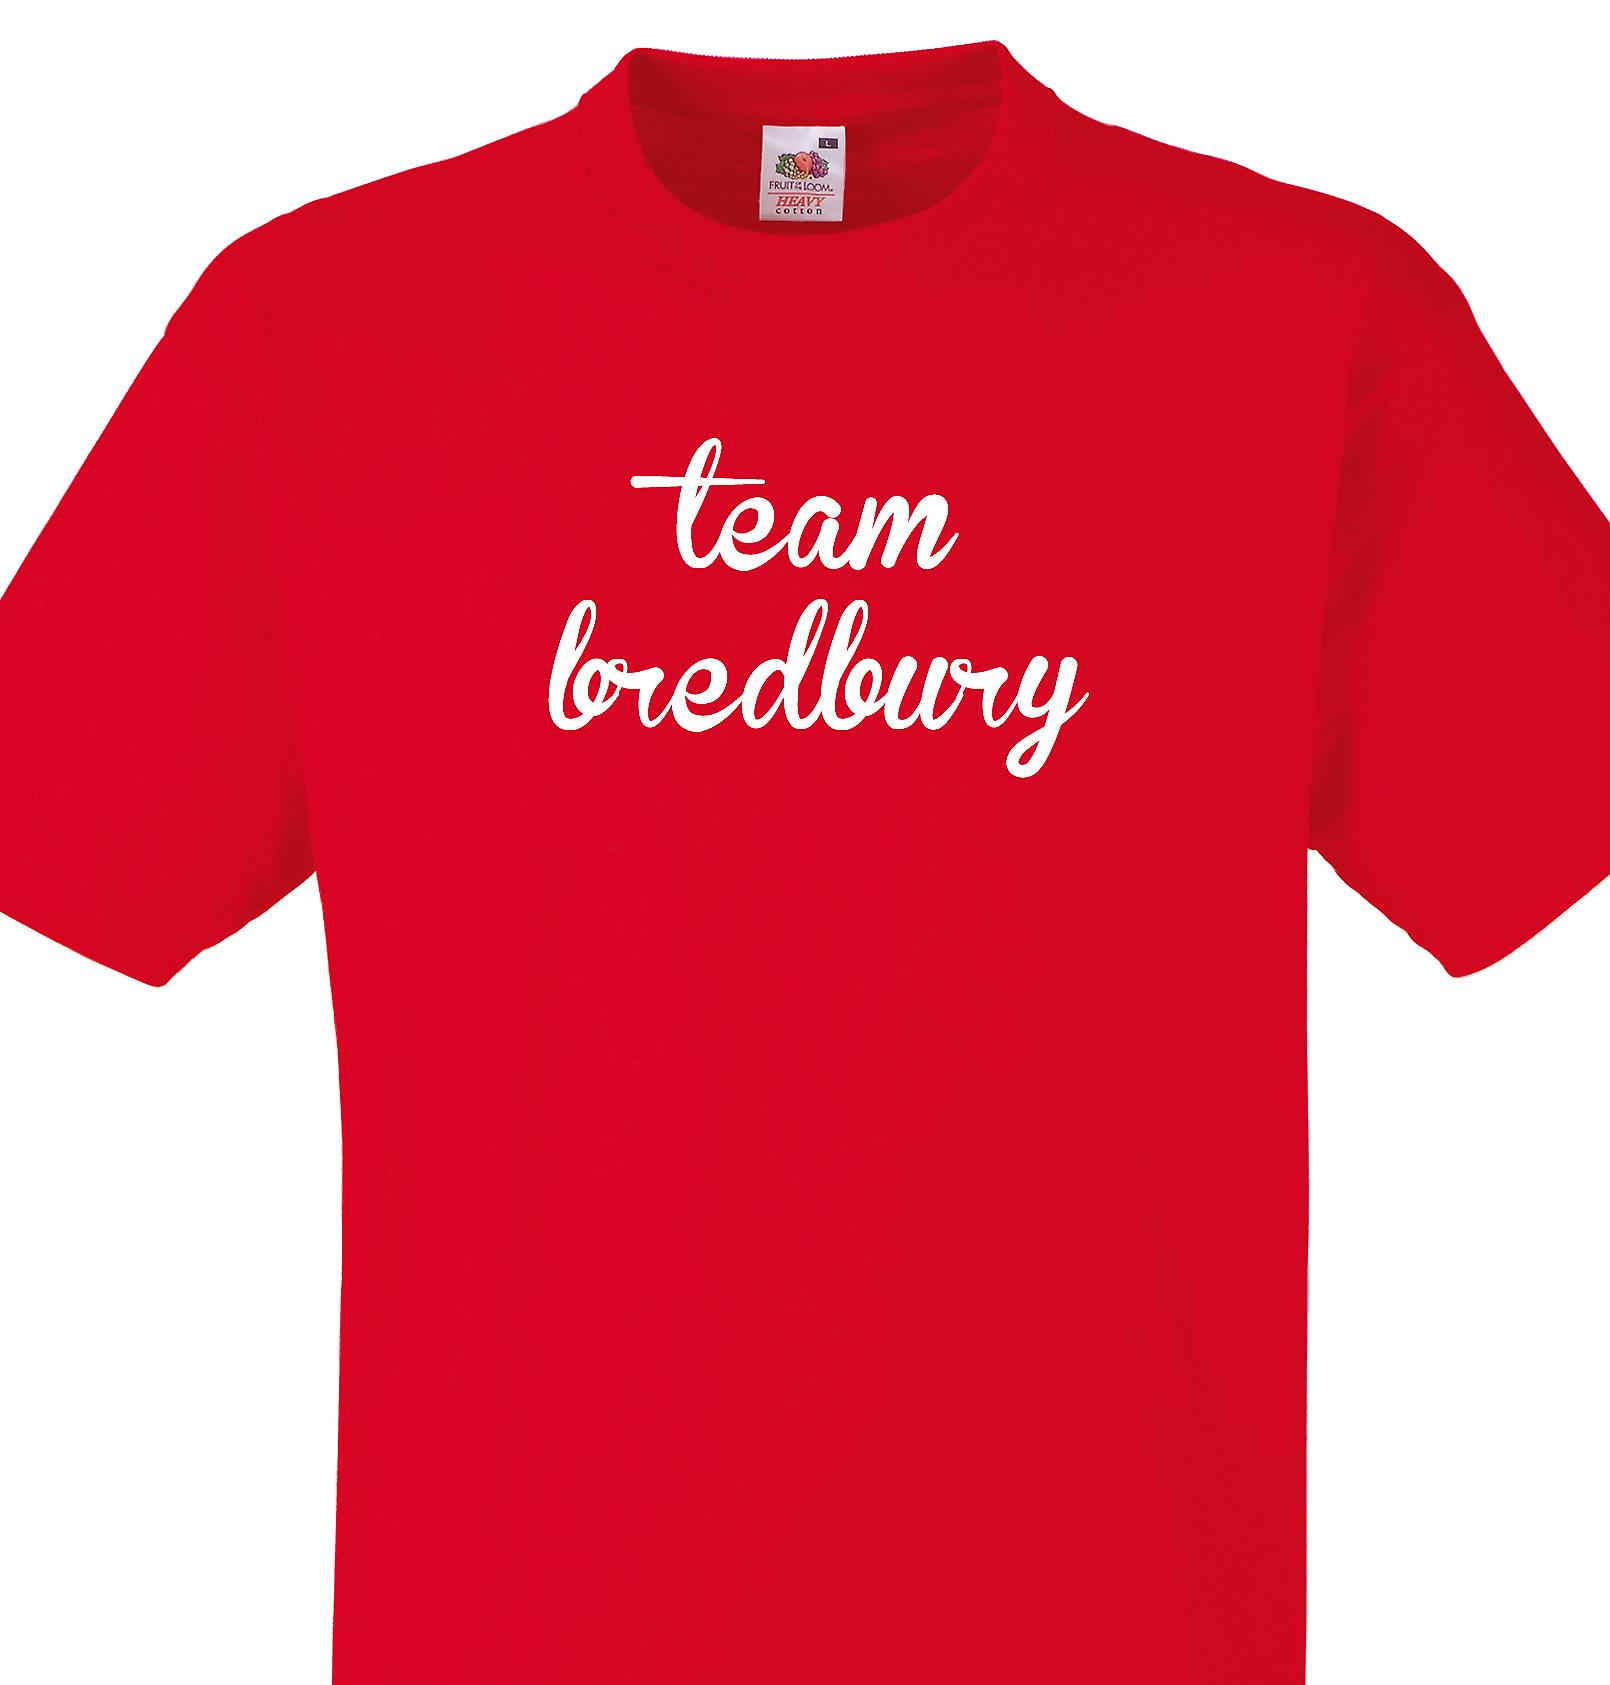 Team Bredbury Red T shirt